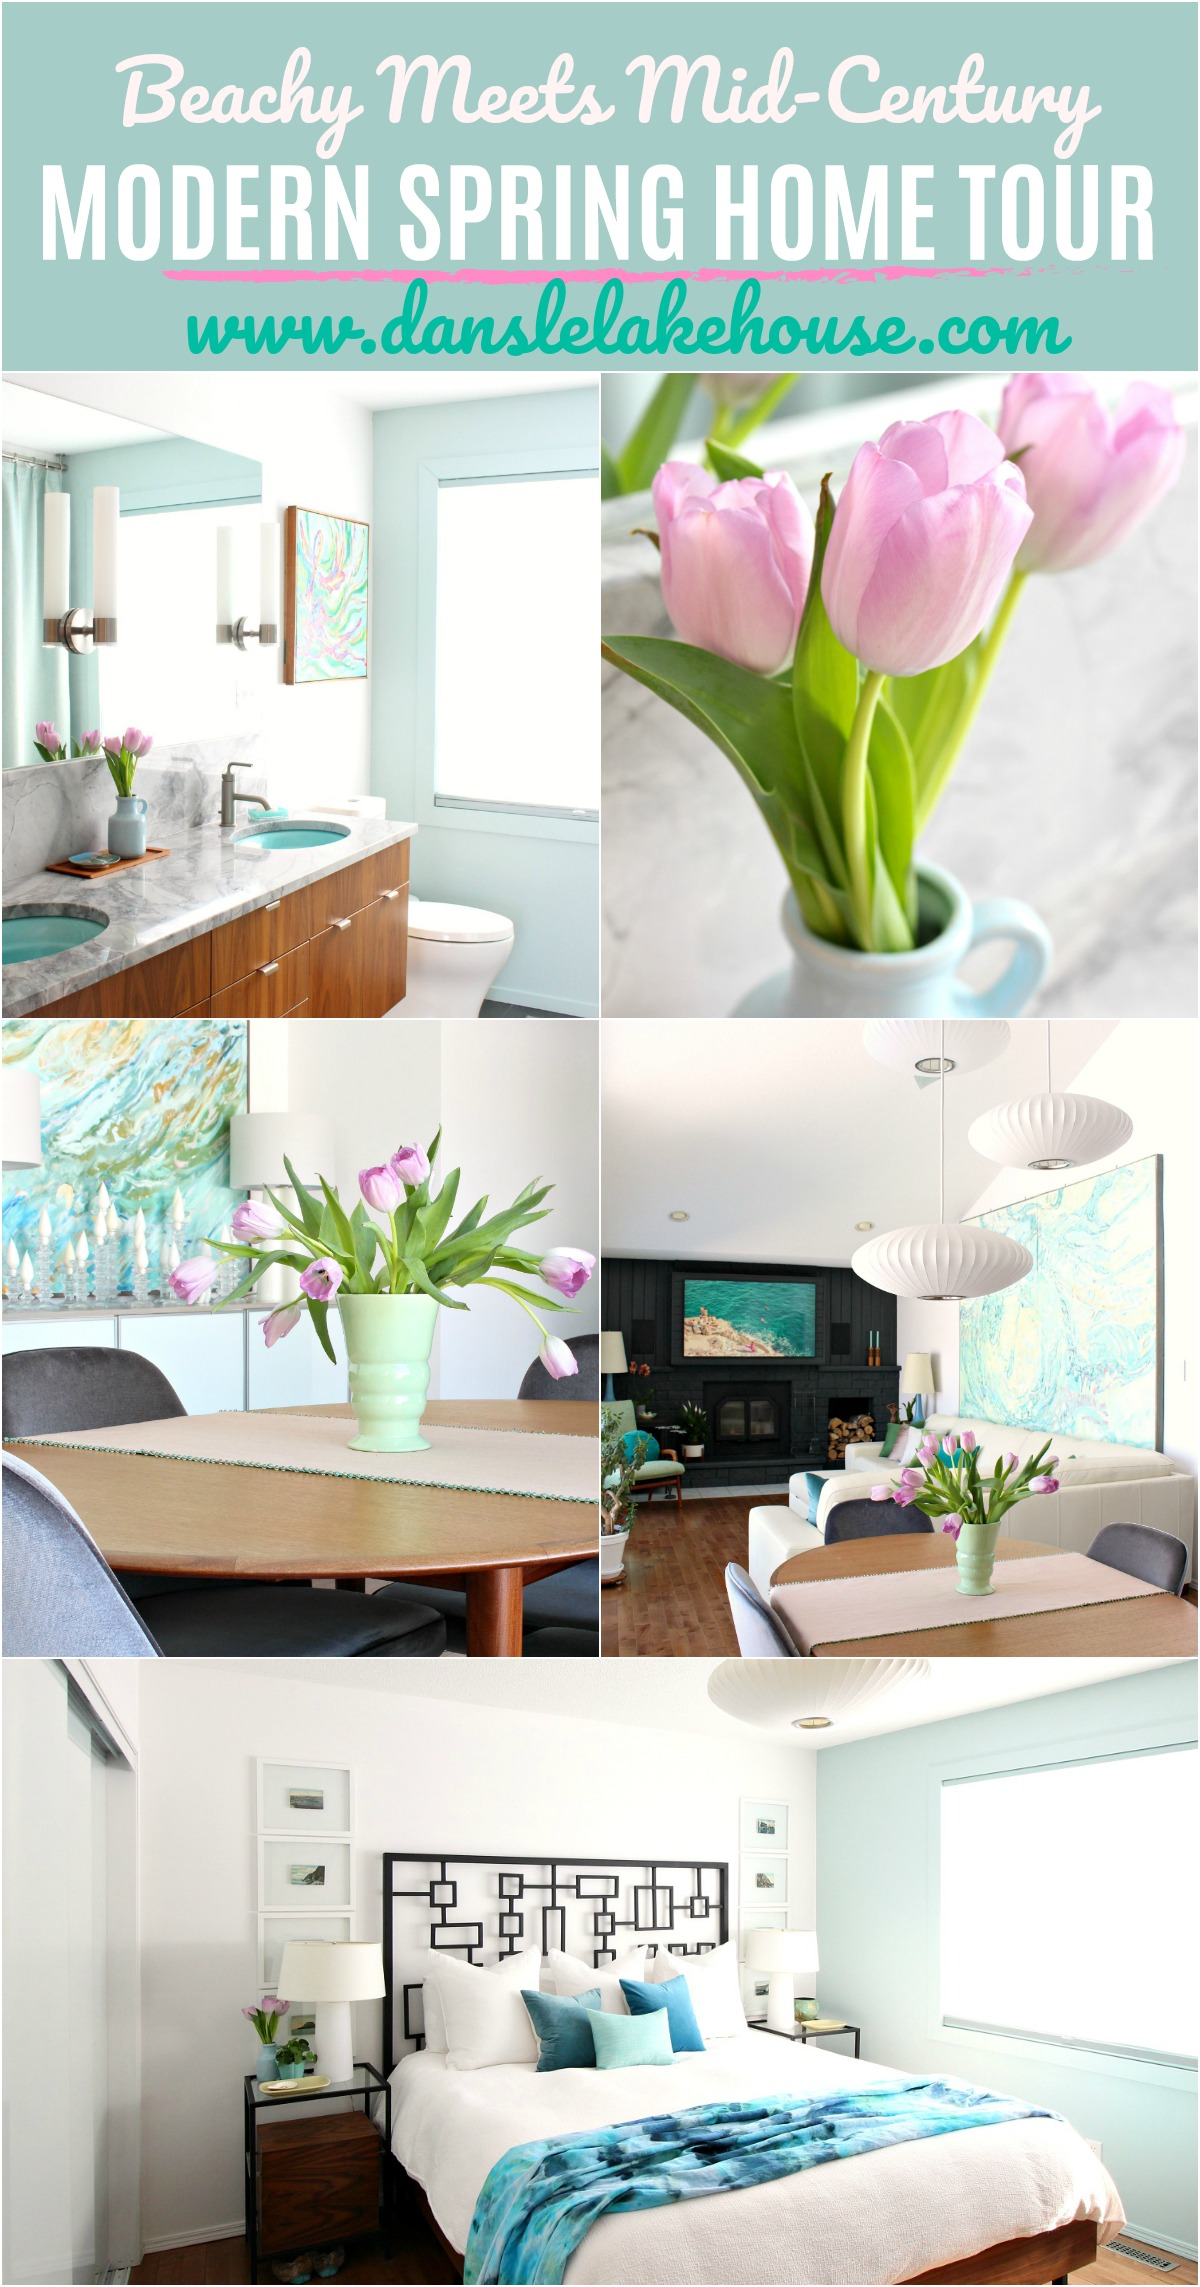 Beachy Meets Mid-Century Modern Spring Home Tour Blog Hop. TONS of Easy and Affordable Spring Decor Ideas. #springdecor #homedecor #moderncoastal #beachy #beachhouse